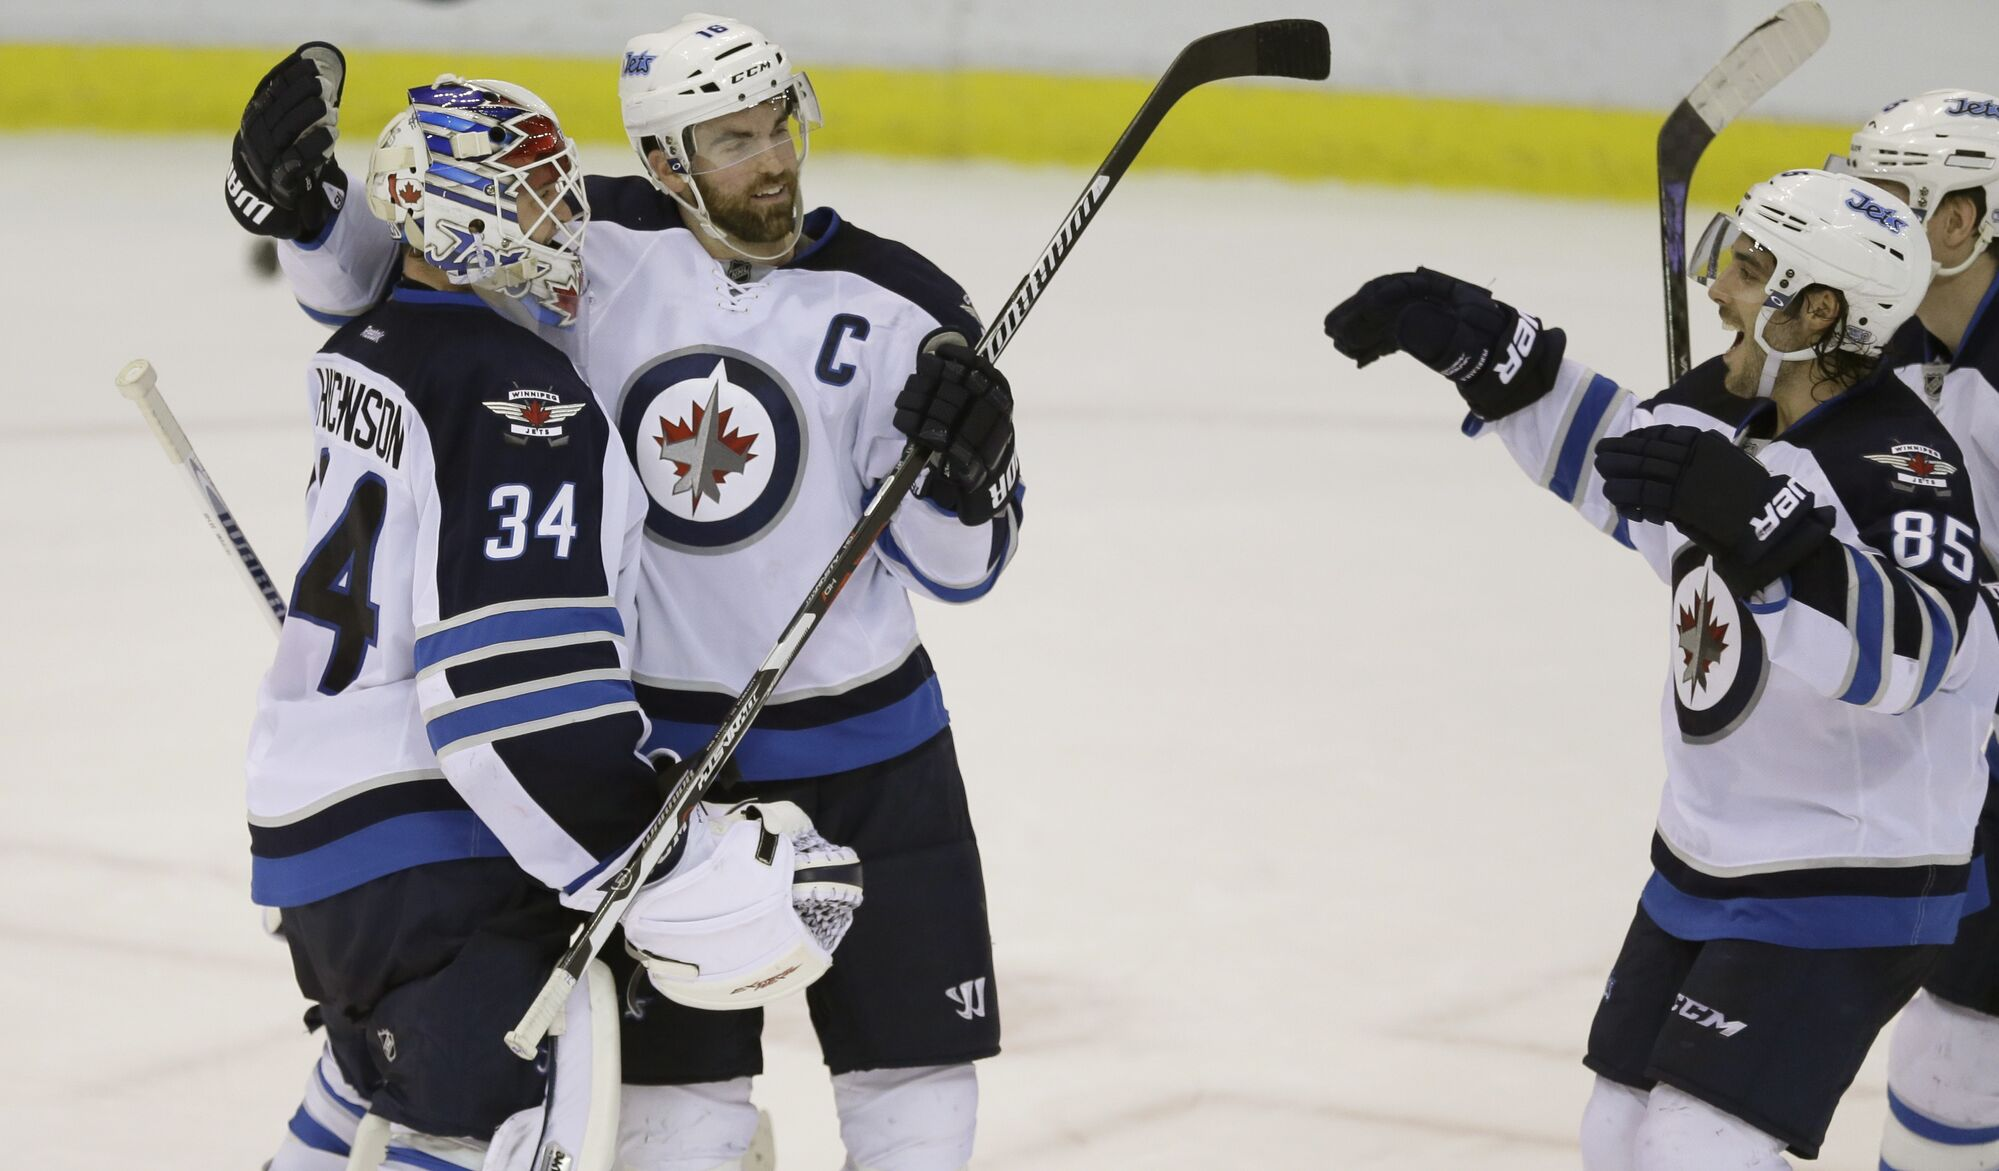 The Jets celebrate their 5-4 shootout triumph over the Detroit Red Wings.